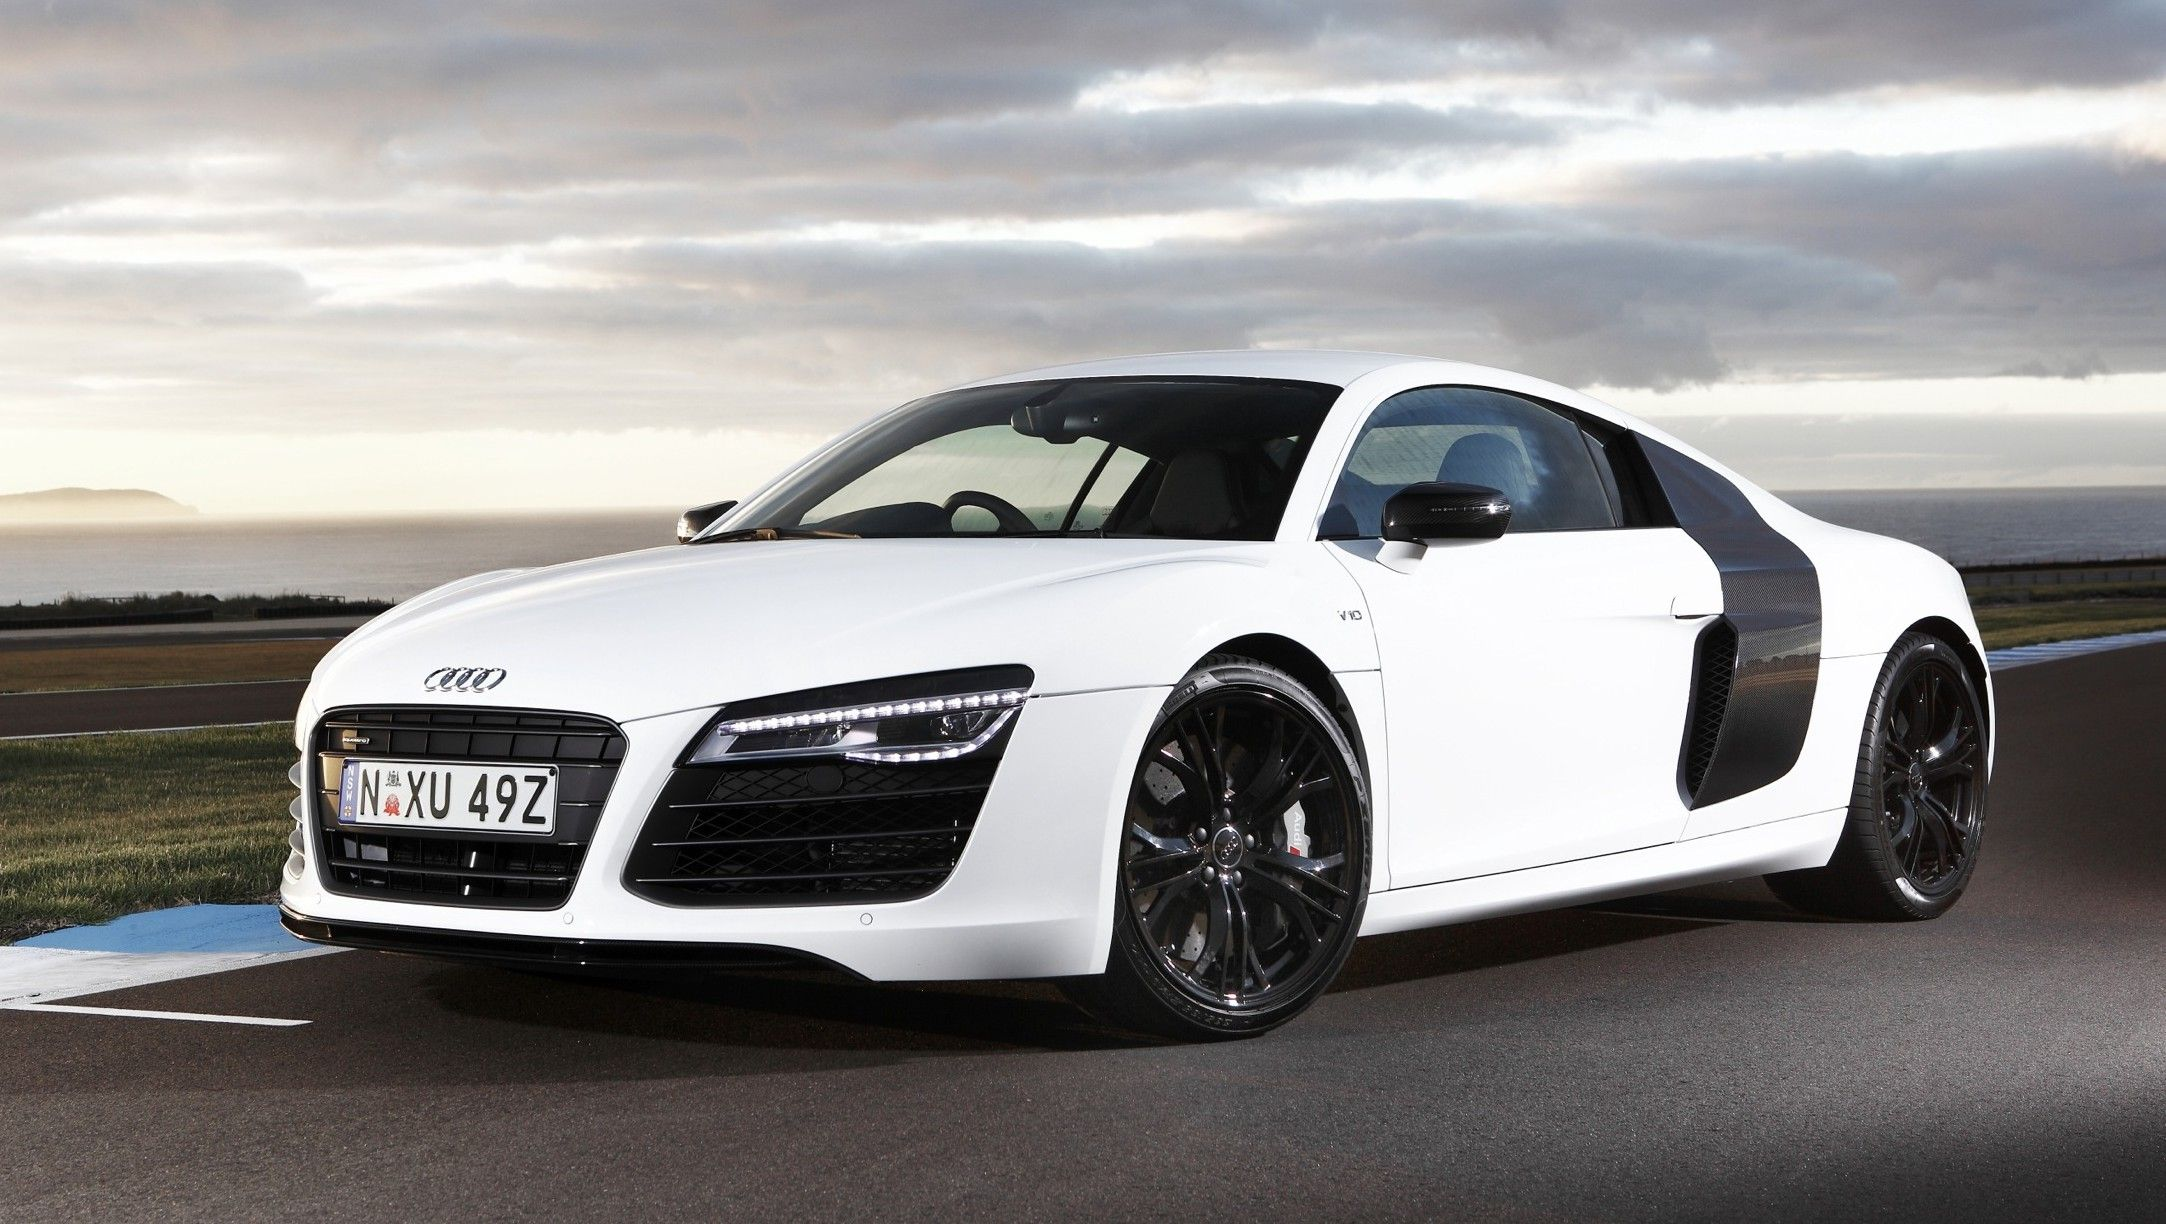 Best 25 audi r8 price ideas on pinterest price of audi r8 dream cars and audi r8 interior